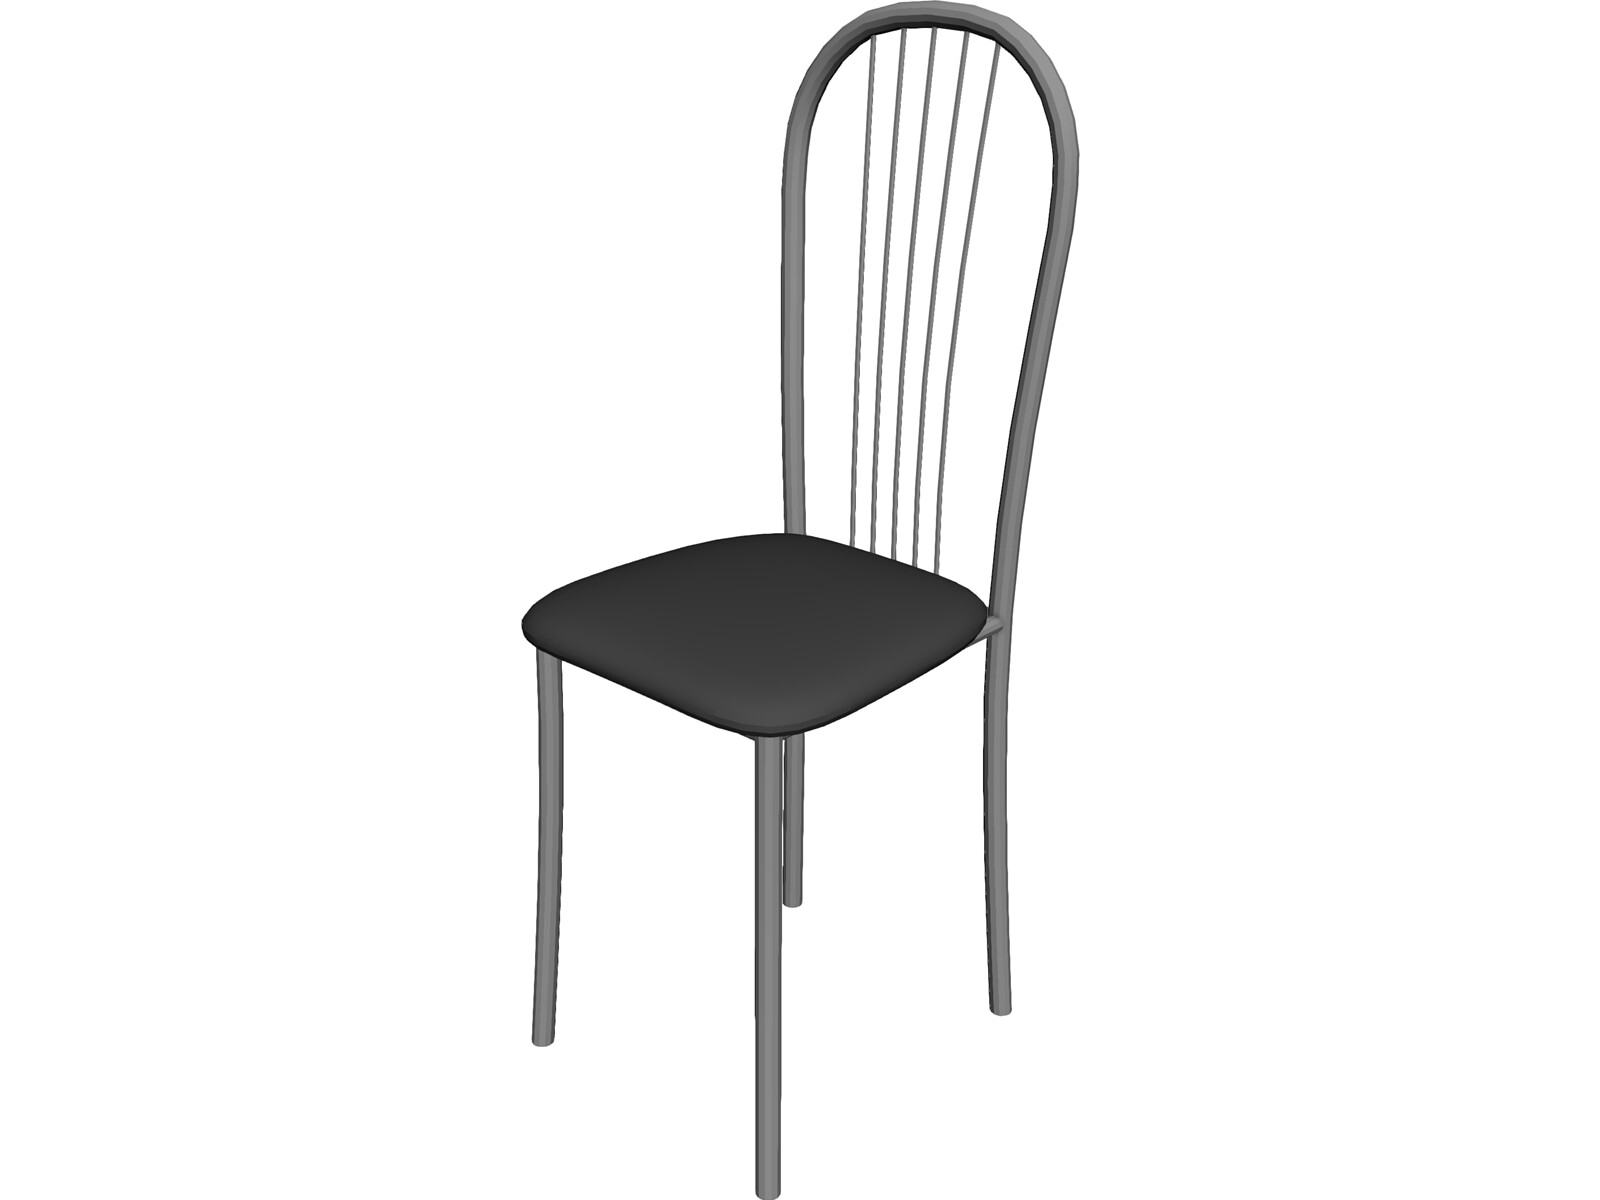 Incroyable Metal Kitchen Chair 3D Model